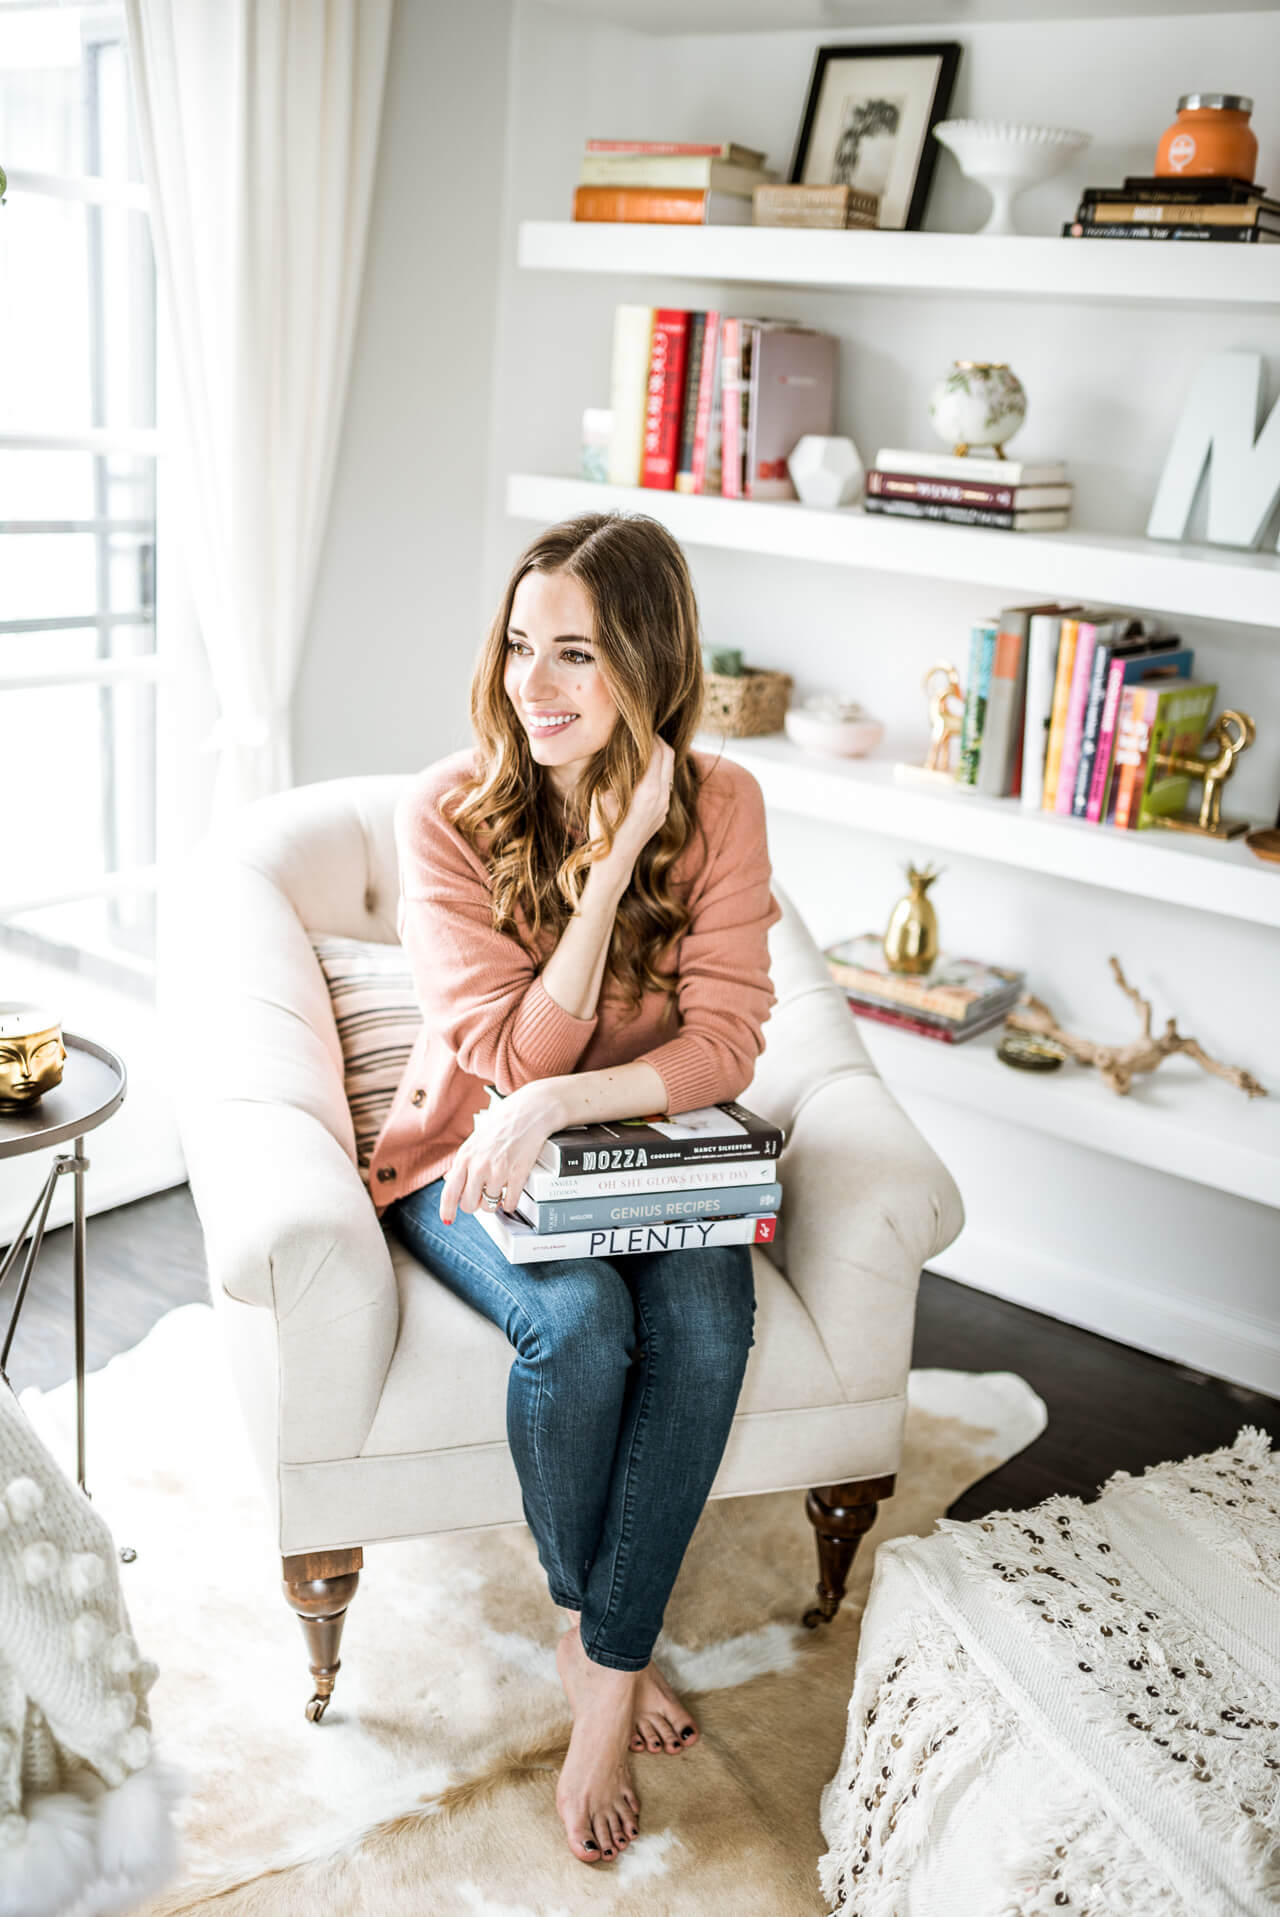 sharing my favorite cookbooks today on the blog - M Loves M @marmar